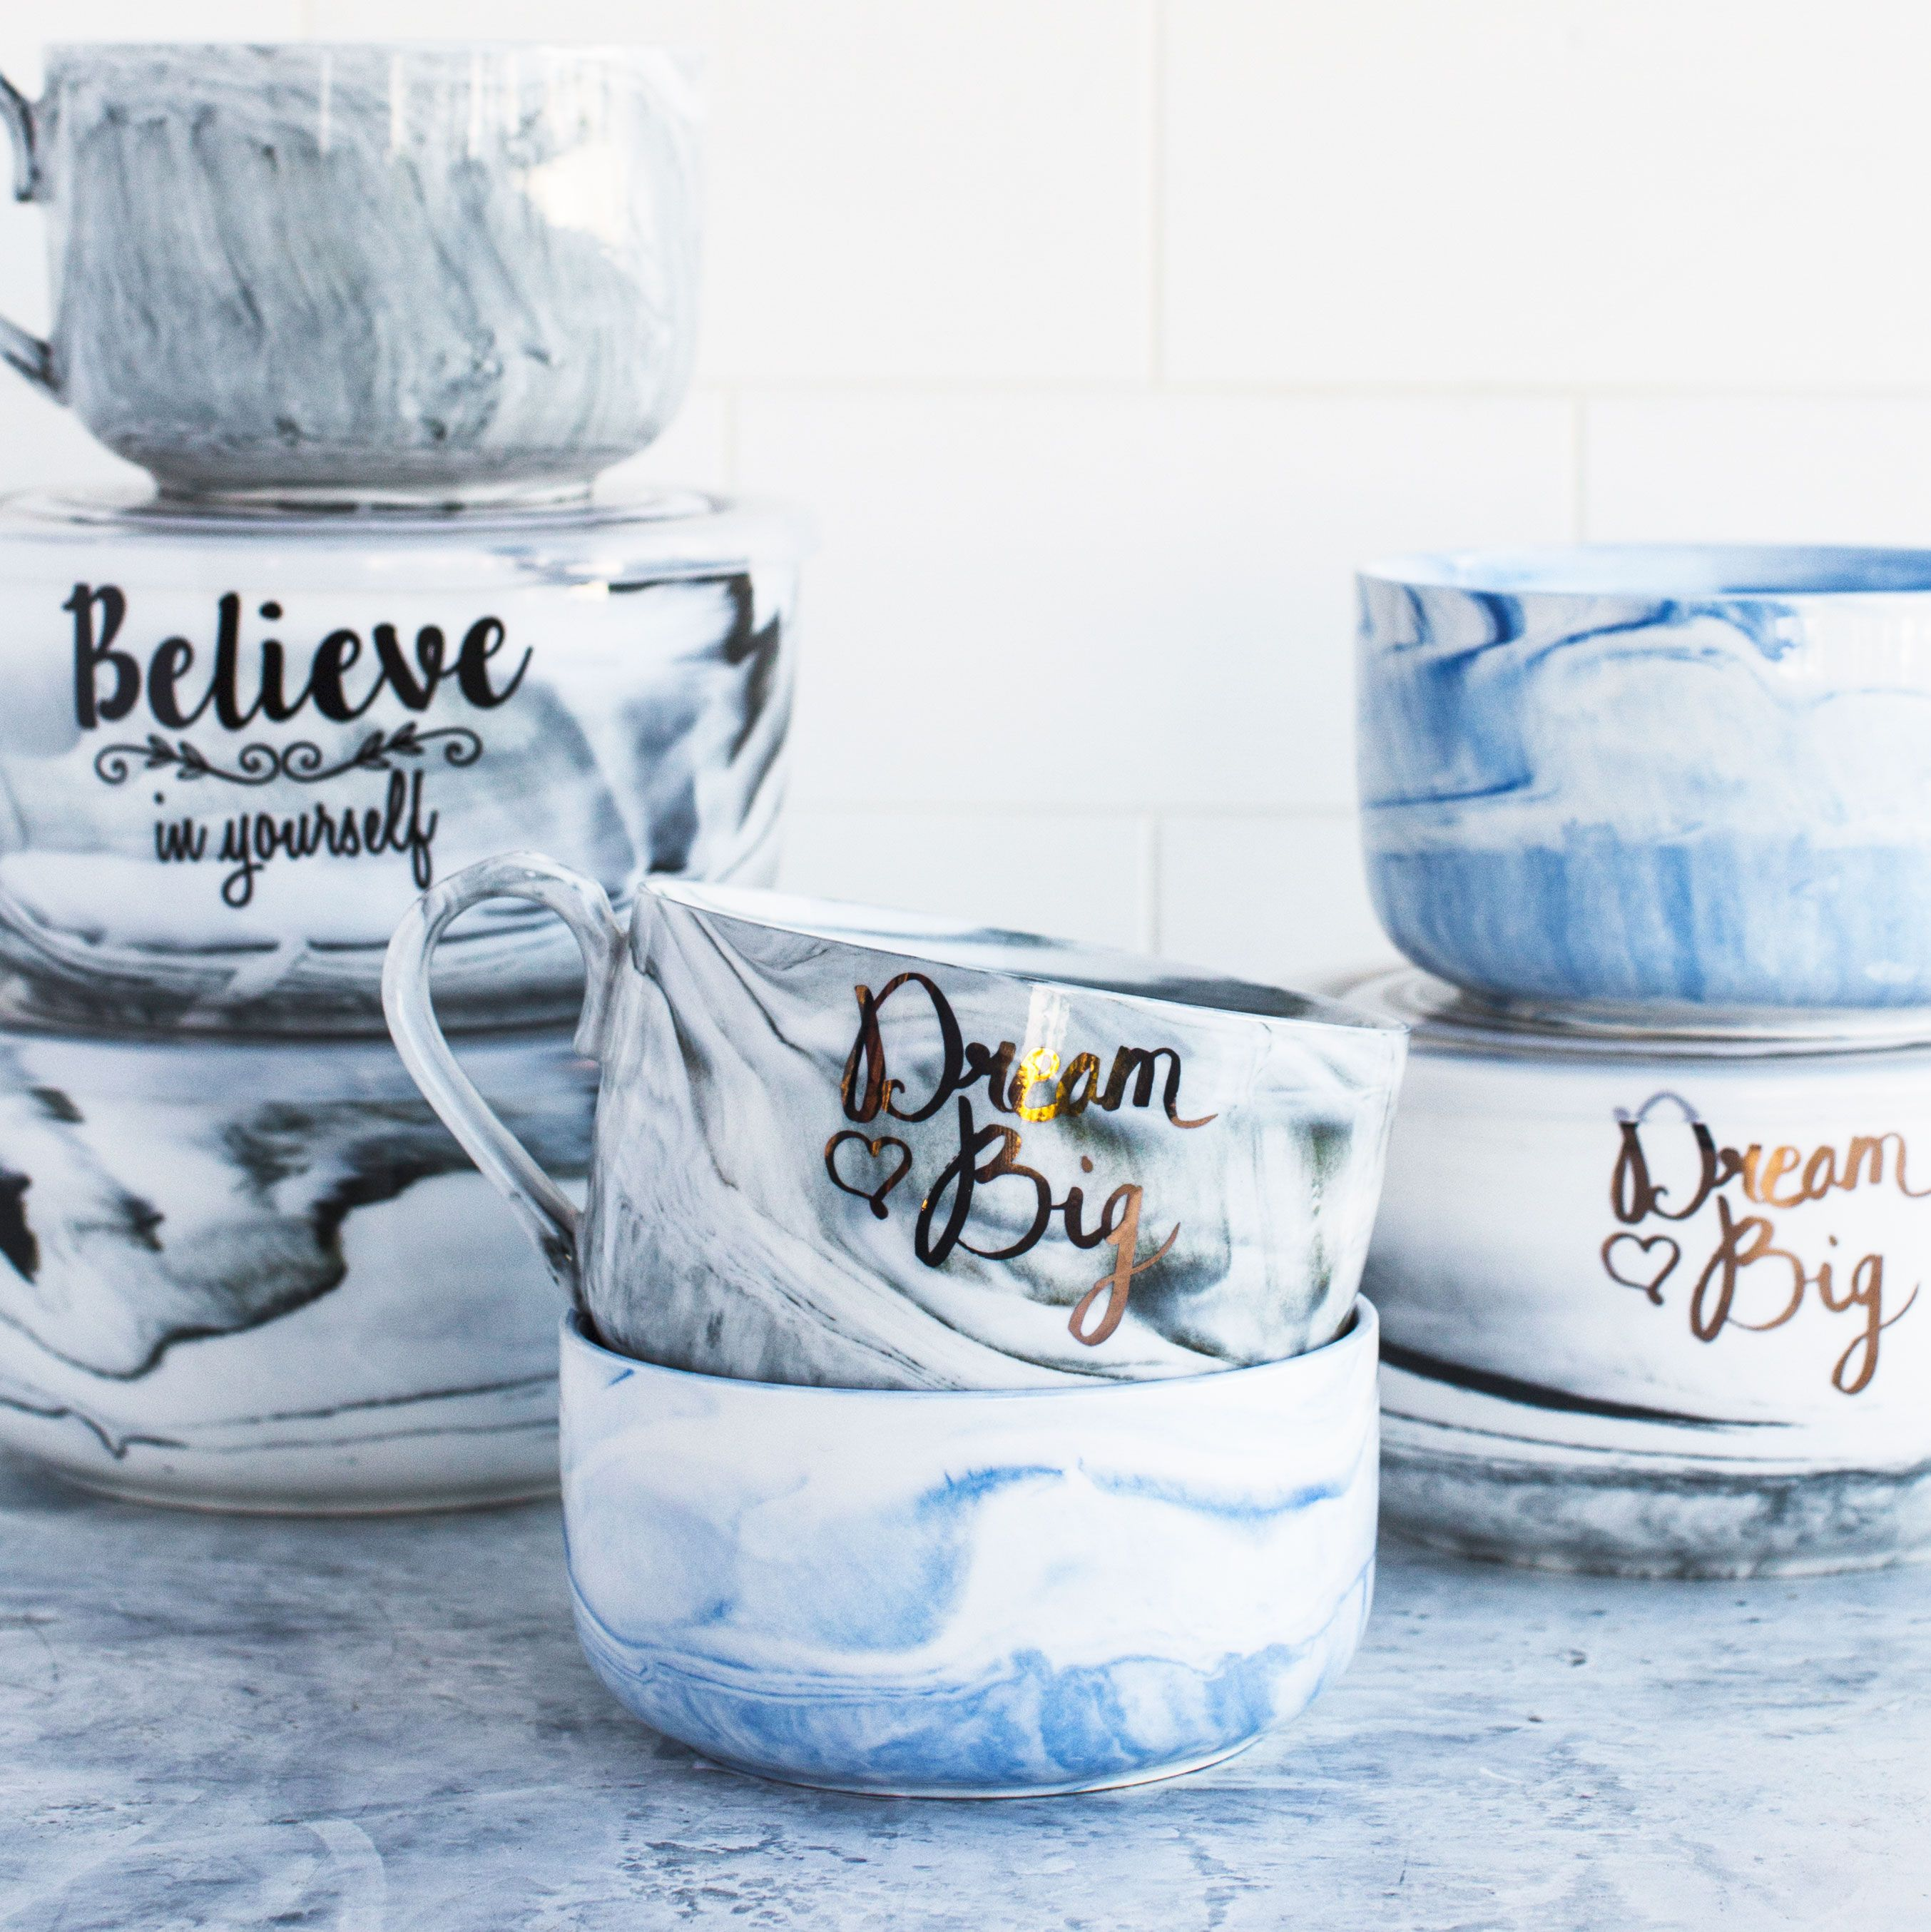 f05b4baa9bc Our gorgeous marbled microwave me jars and mugs. Dream big & believe ...